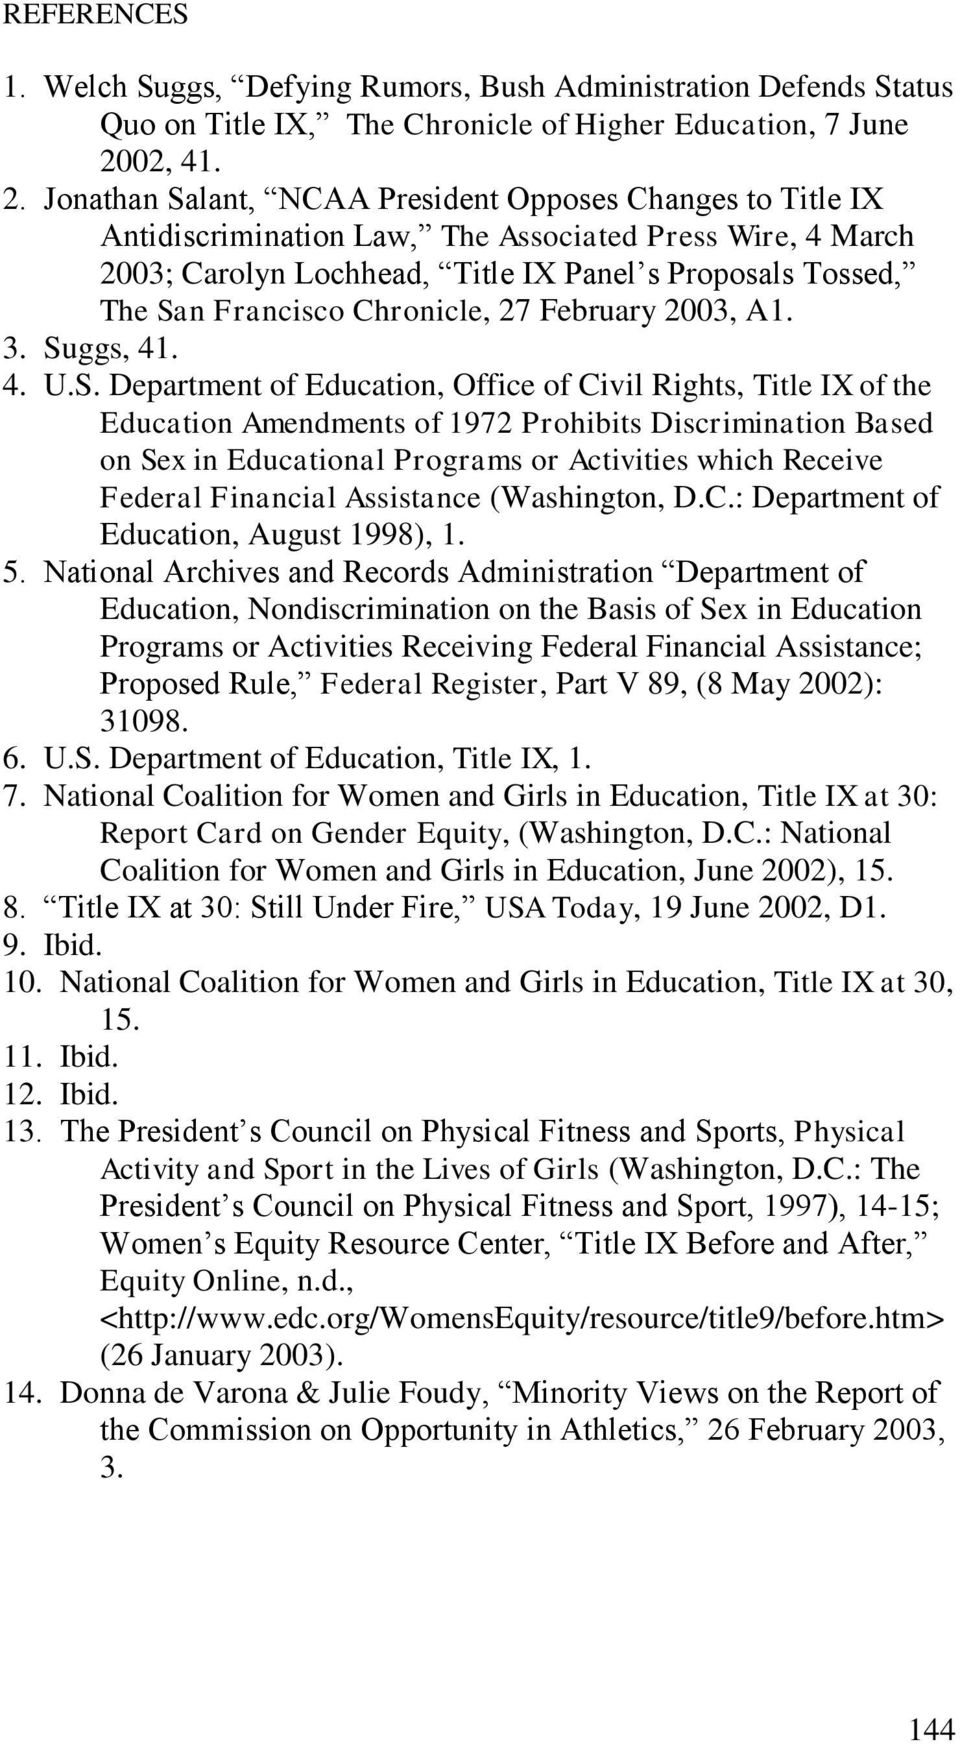 Jonathan Salant, NCAA President Opposes Changes to Title IX Antidiscrimination Law, The Associated Press Wire, 4 March 2003; Carolyn Lochhead, Title IX Panel s Proposals Tossed, The San Francisco